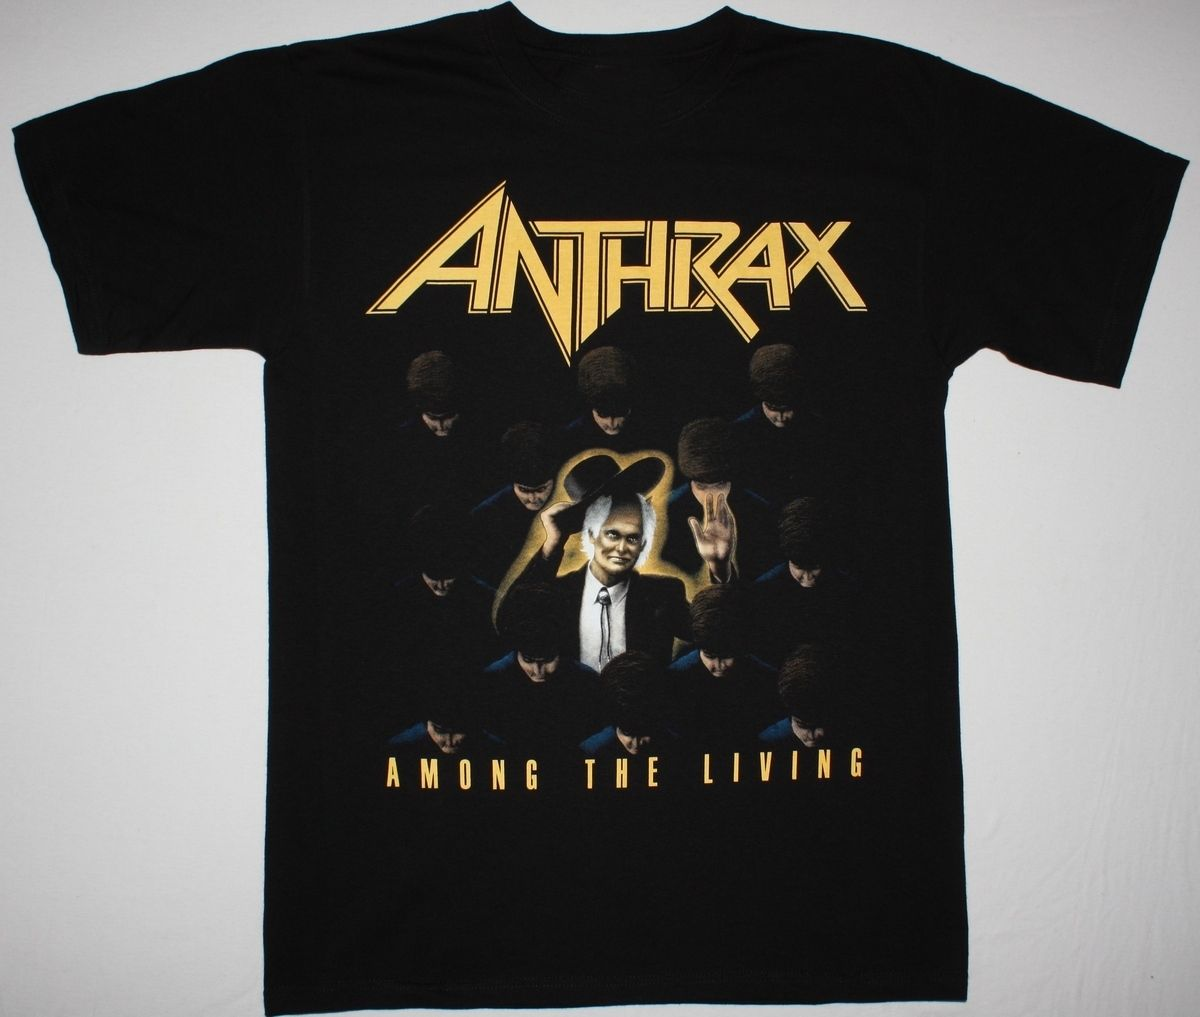 ANTHRAX AMONG THE LIVING BLACK T SHIRT THRASH METAL S.O.D. ARMORED SAINT SLAYER